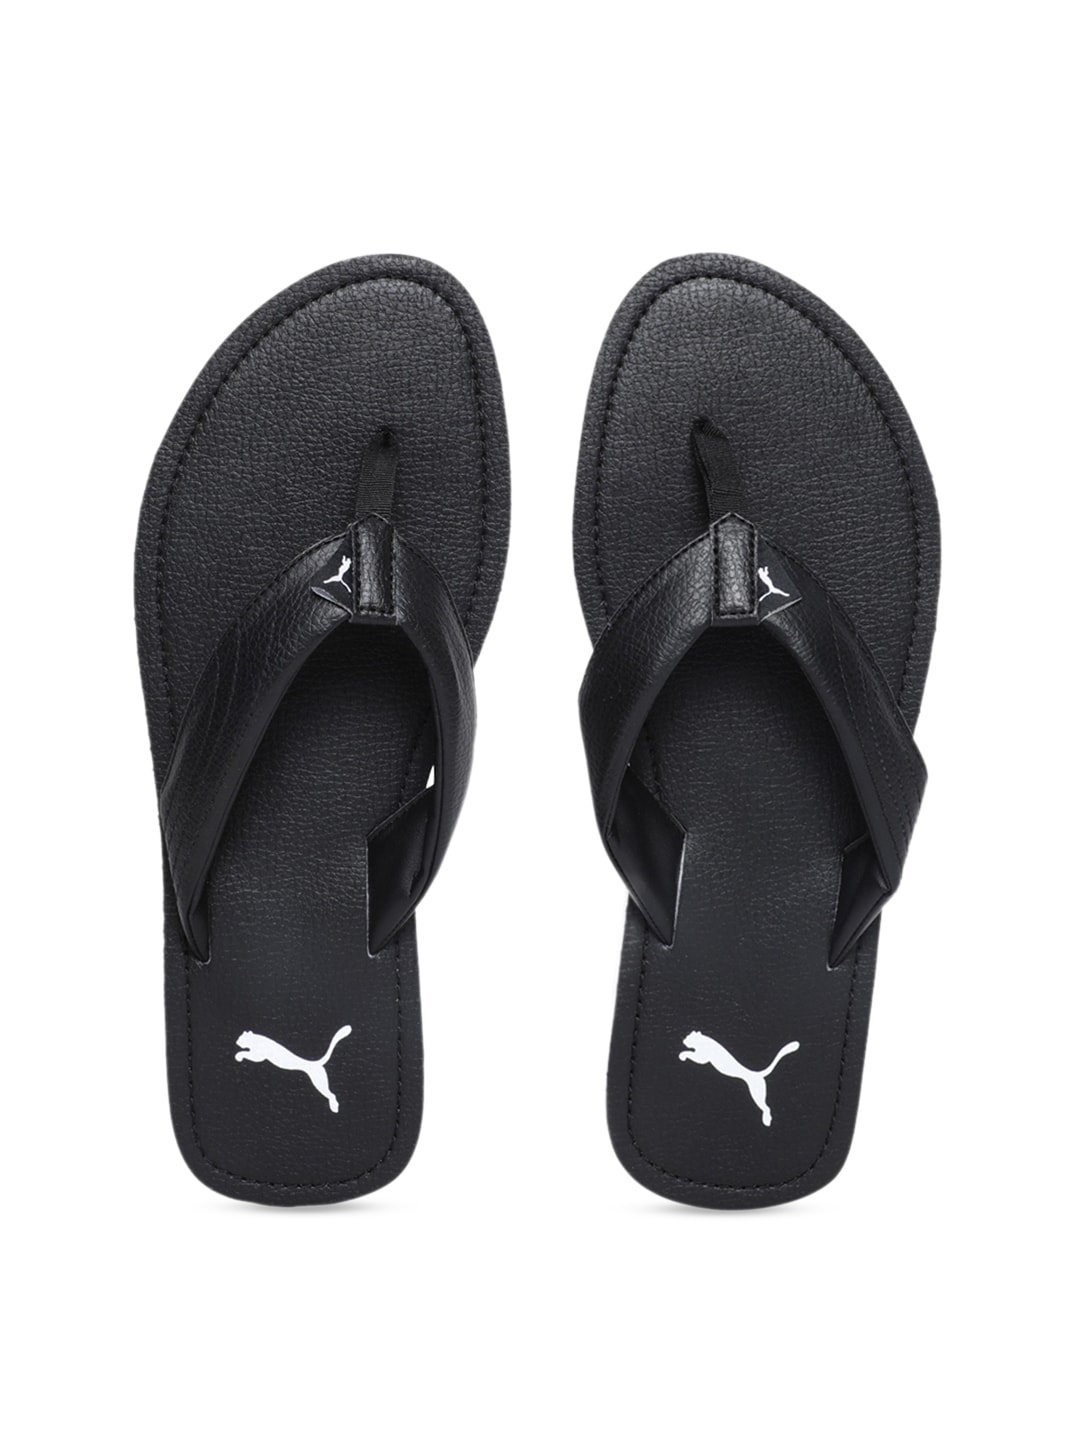 ec991d935ae9 Puma Slippers - Buy Puma Slippers Online at Best Price